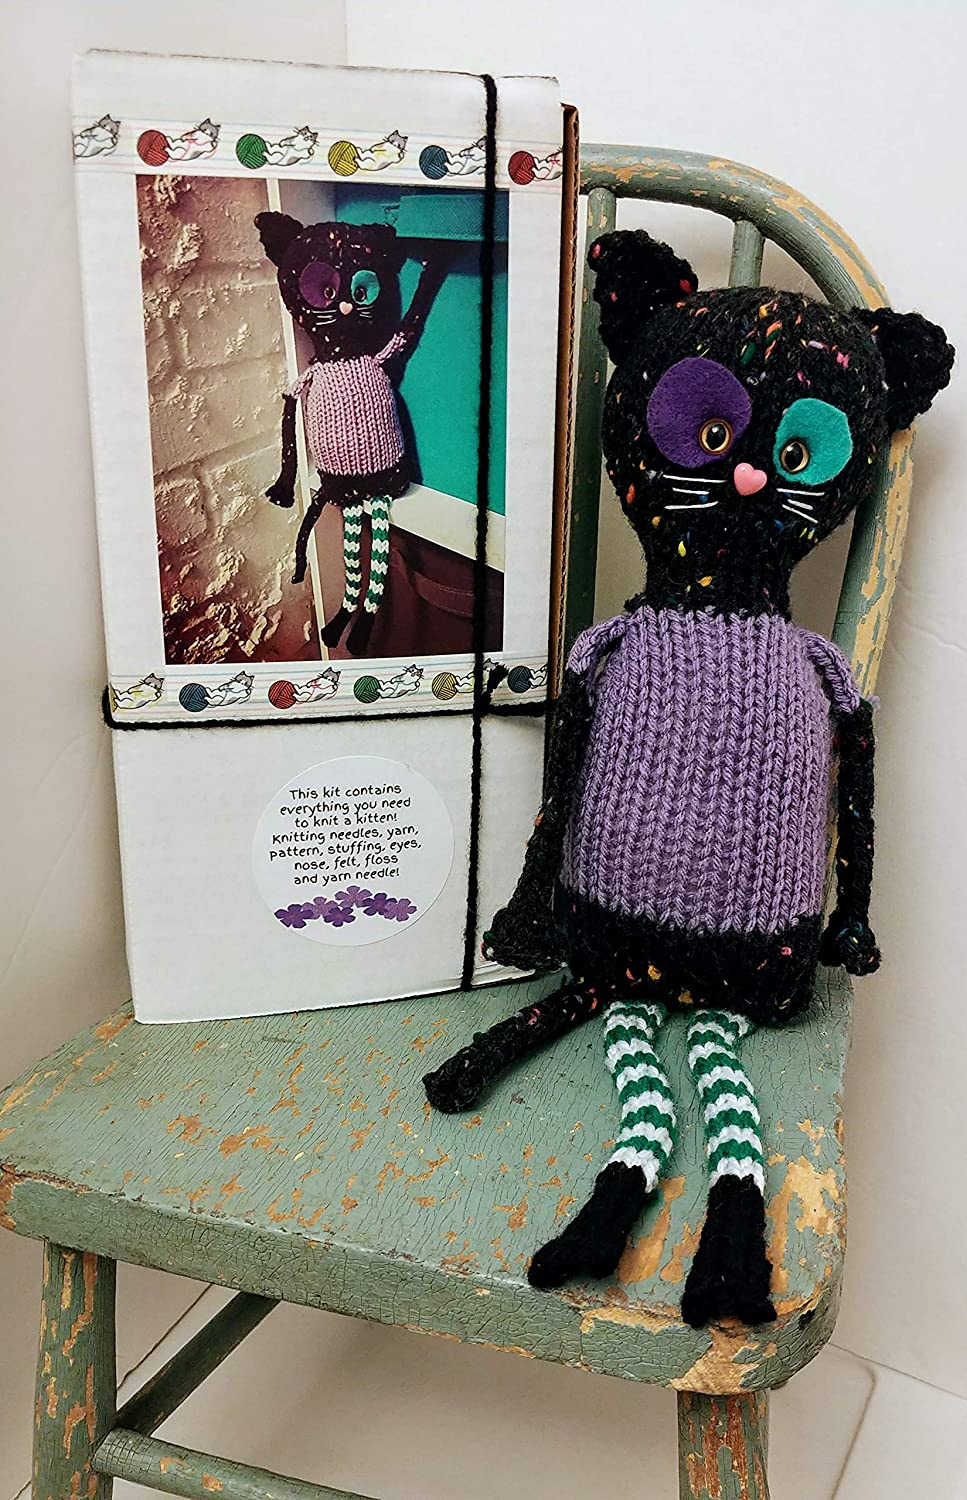 felt Great different knitter gift etc Knit your own Kitty Cat Kitten doll Kit DIY with pattern and knitting needles eyes yarn choose Violet or Milo